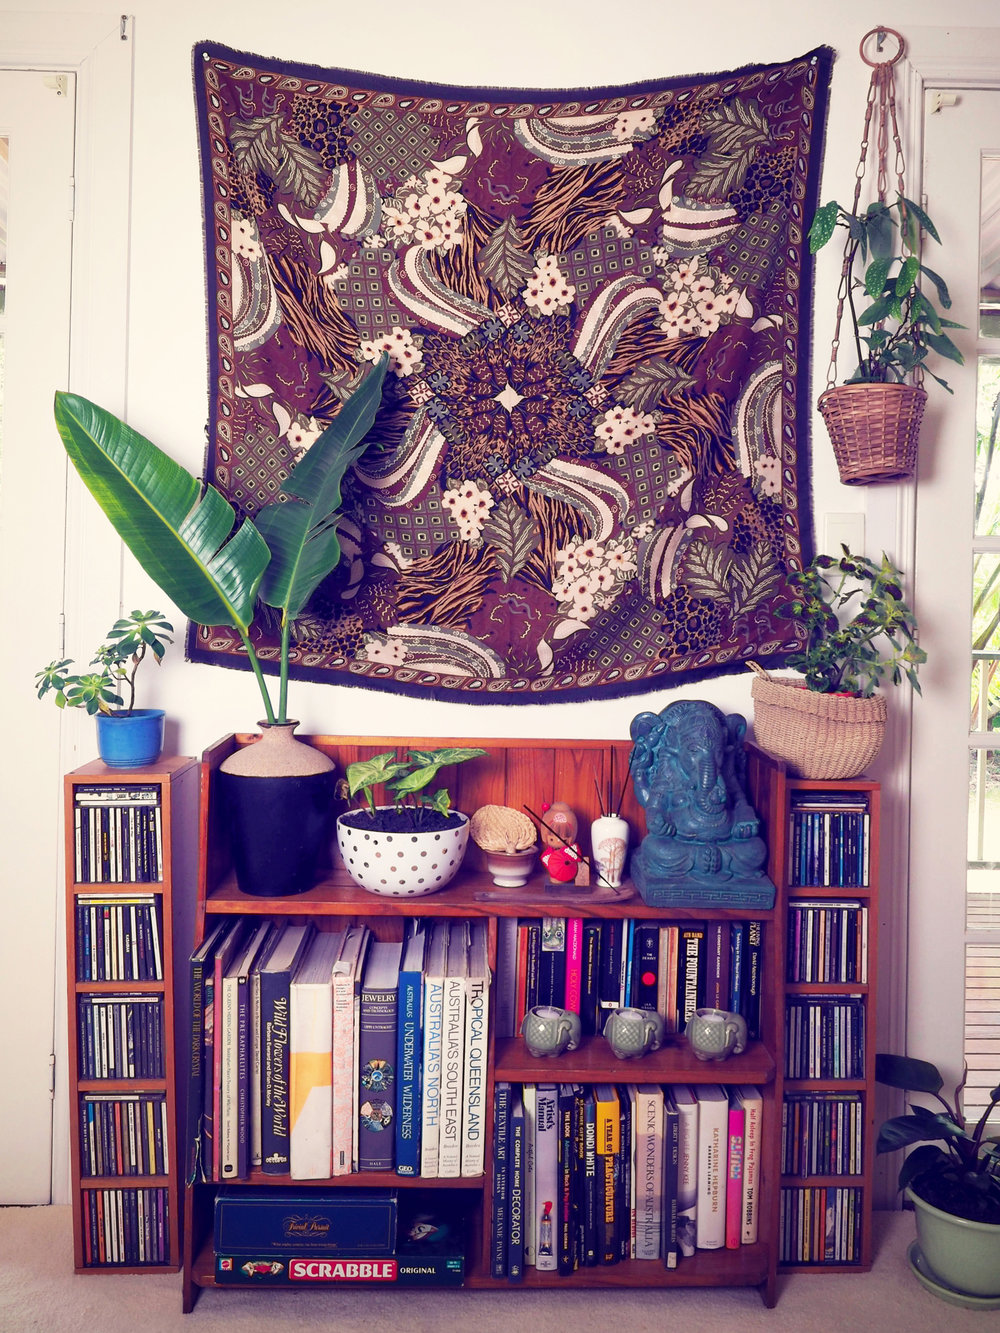 eclectic home styling - books and travel souvenirs